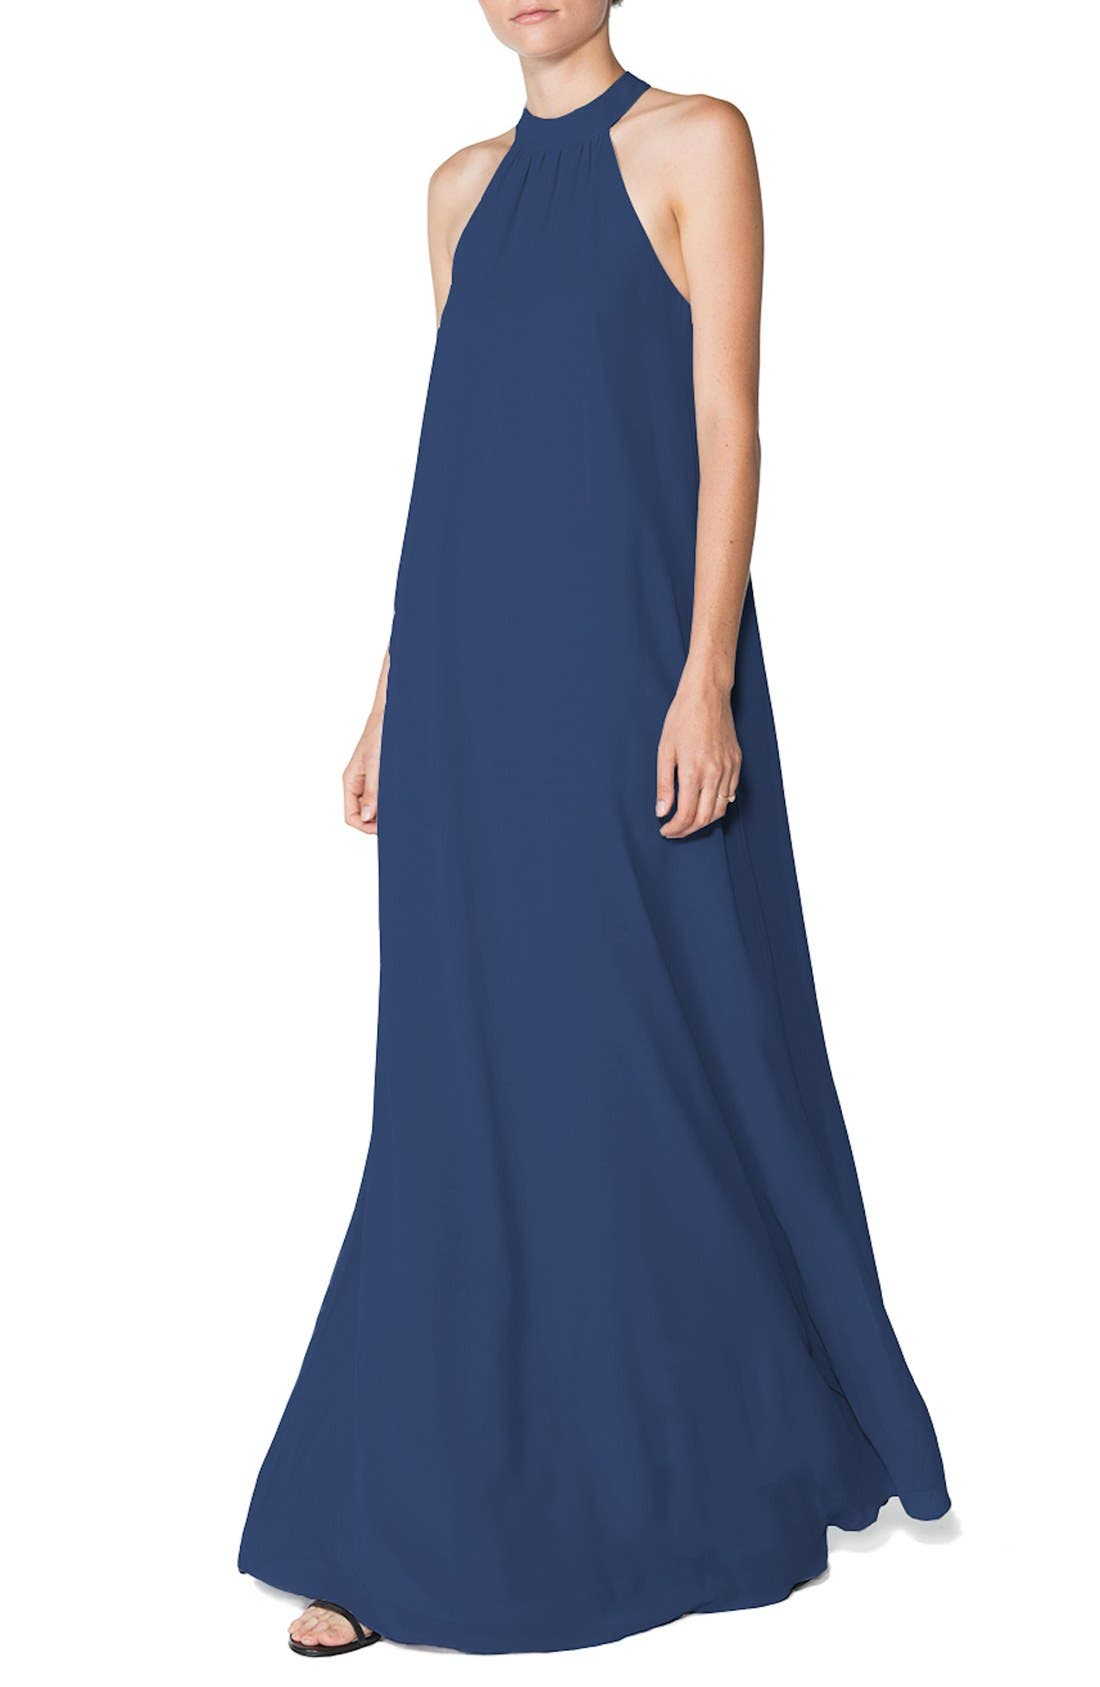 CEREMONY BY JOANNA AUGUST 'Elena' Halter Style Chiffon